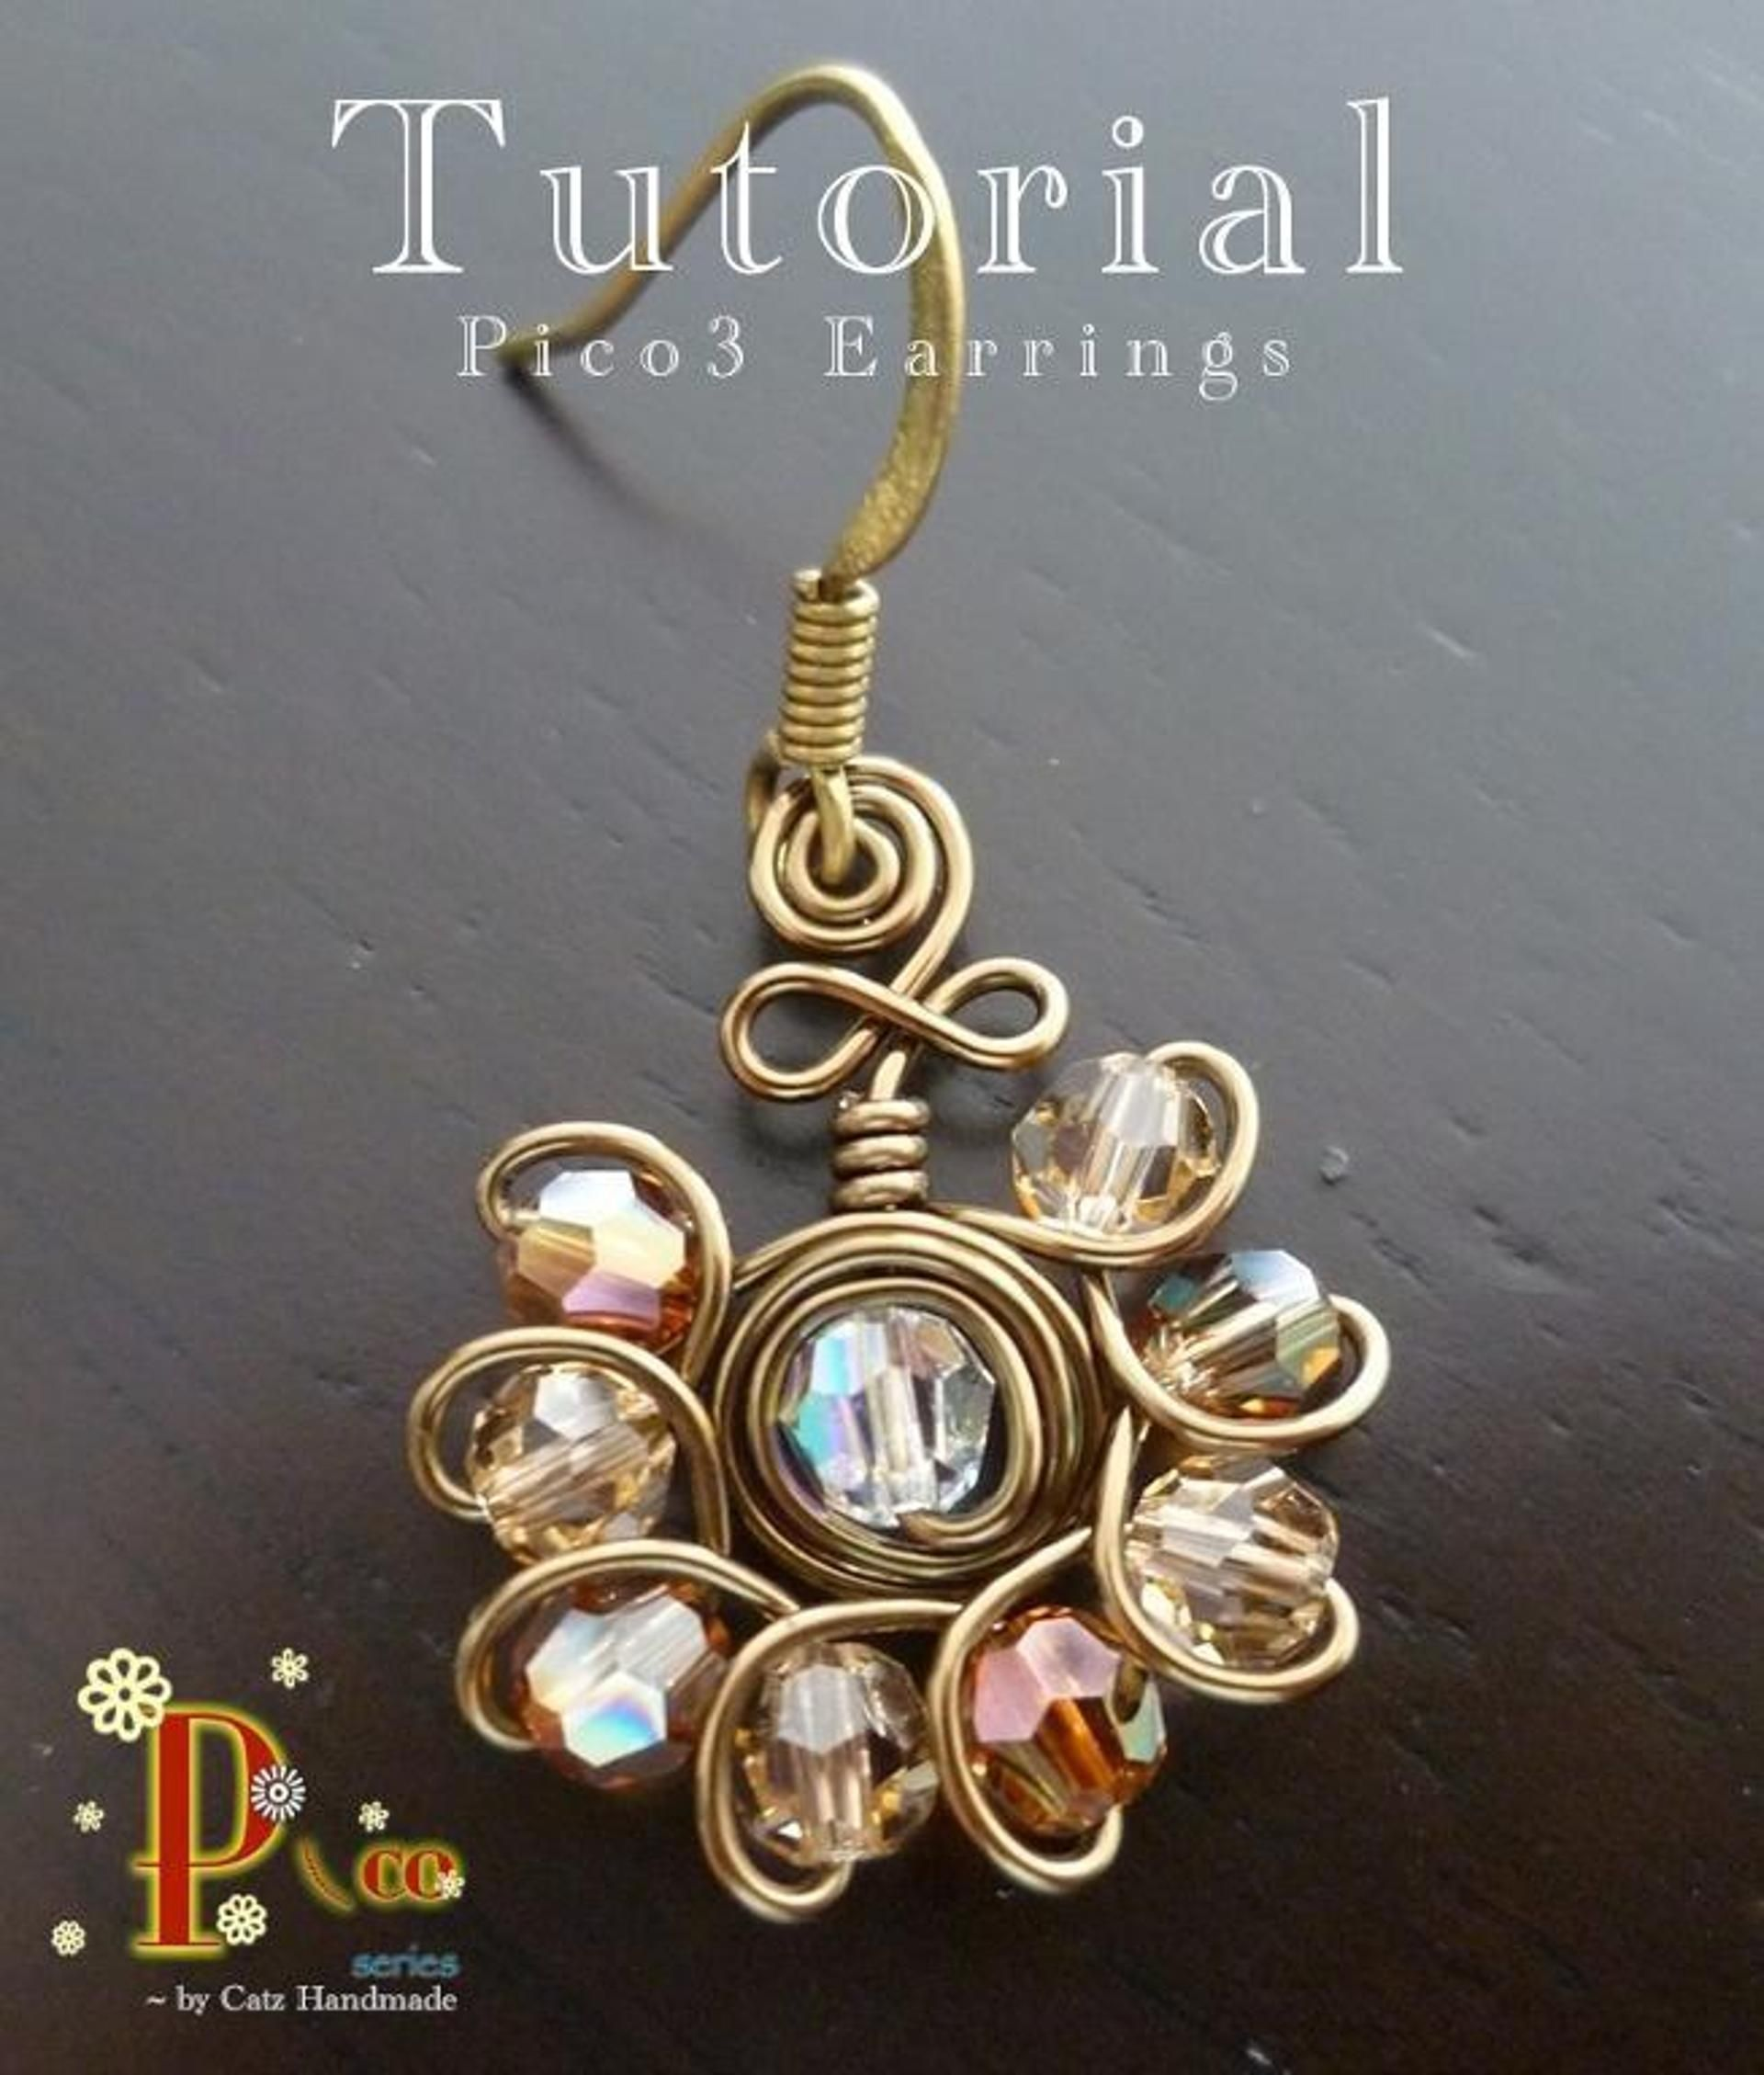 Pico3 Earrings   Beads, Jewelry ideas and Wire wrapping